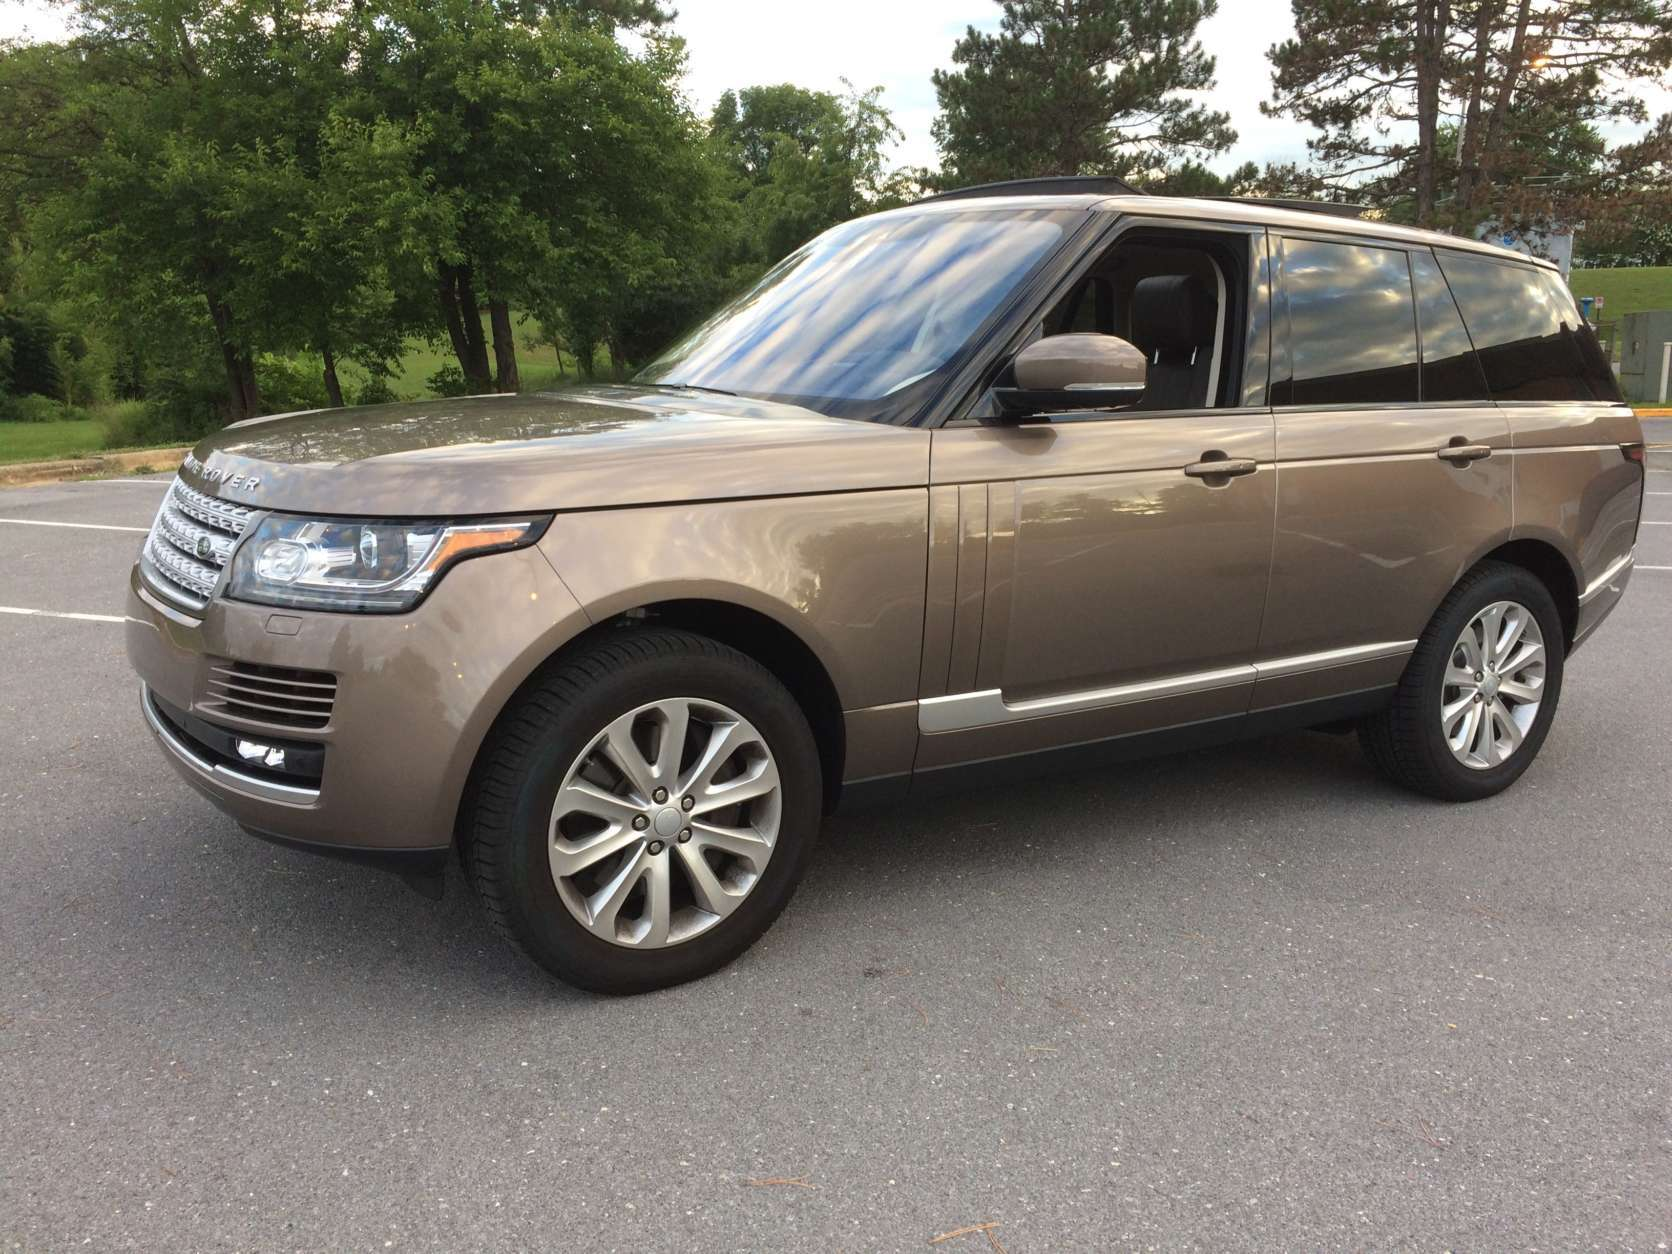 Car guy Mike Parris said that the Range Rover HSE is a Range Rover you can enjoy at less than six figures with all the luxury you expect. (WTOP/Mike Parris)